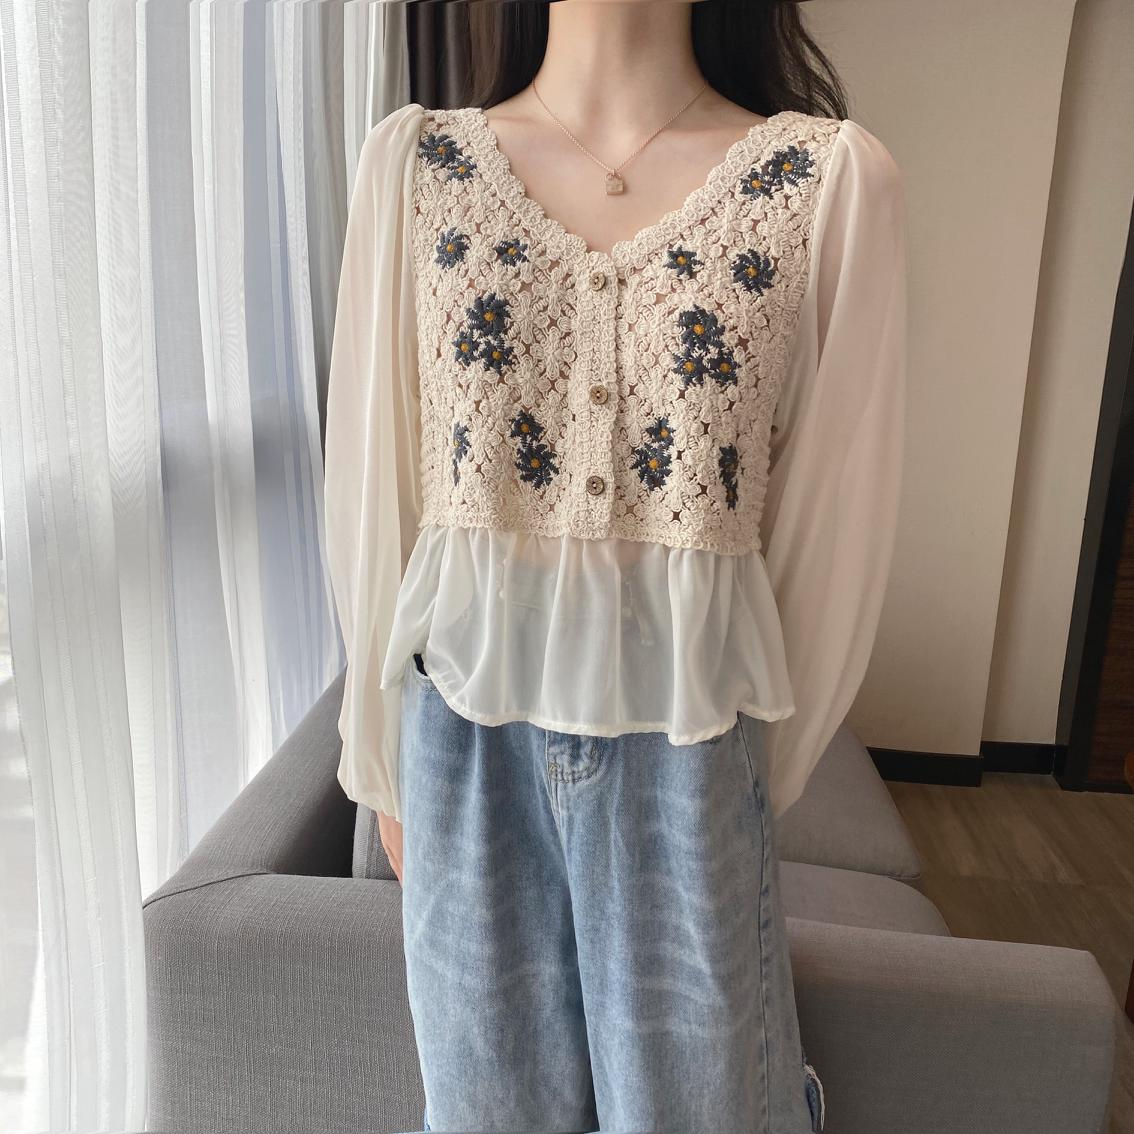 Sexy Hollow Out Blouse Women Spring Fall Elegant V-Neck Female Ins Korean Flower Patchwork Chiffon Knitted Shirts Tops 2021 New